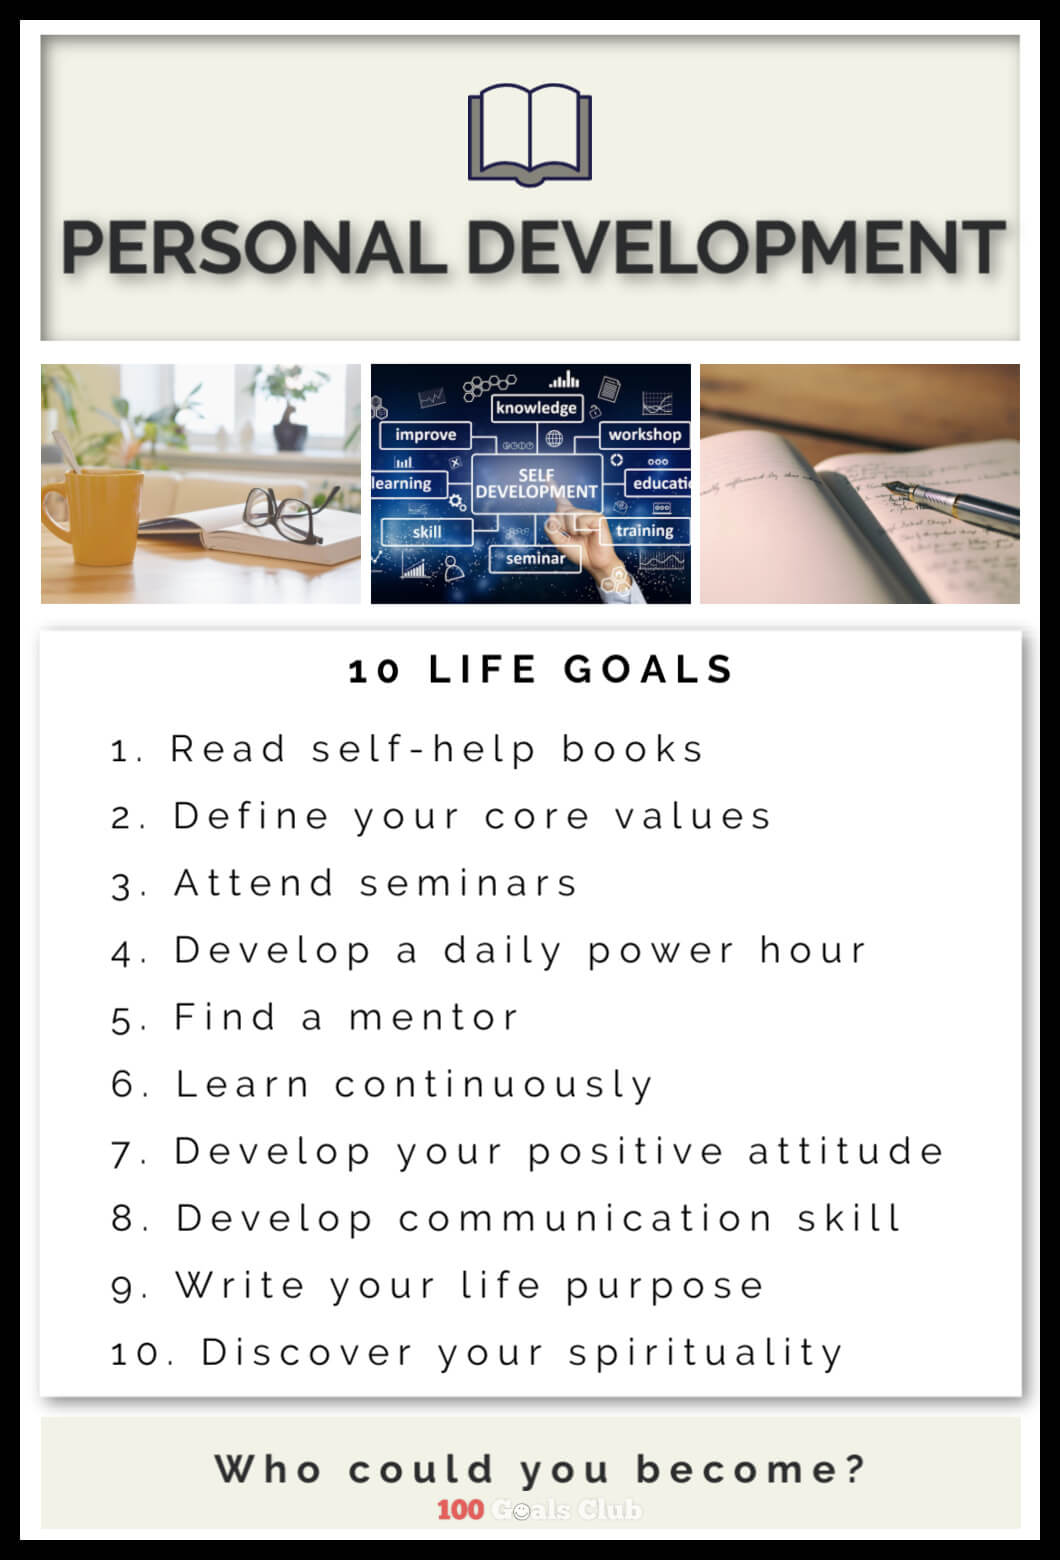 Benefits of Personal Development